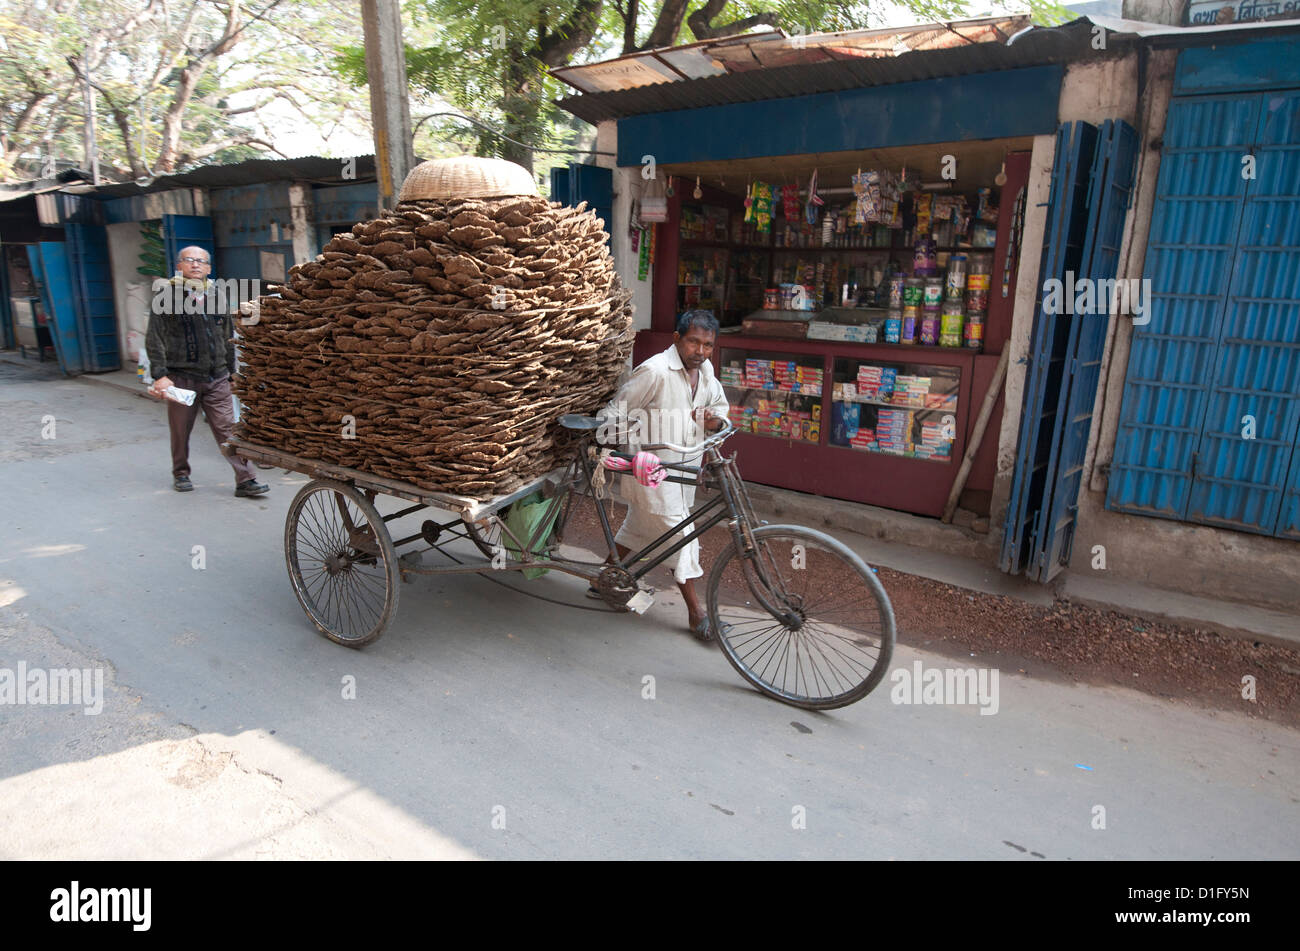 Man wheeling cycle rickshaw laden with dung pats for use as domestic fuel, Hugli village, West Bengal, India, Asia - Stock Image